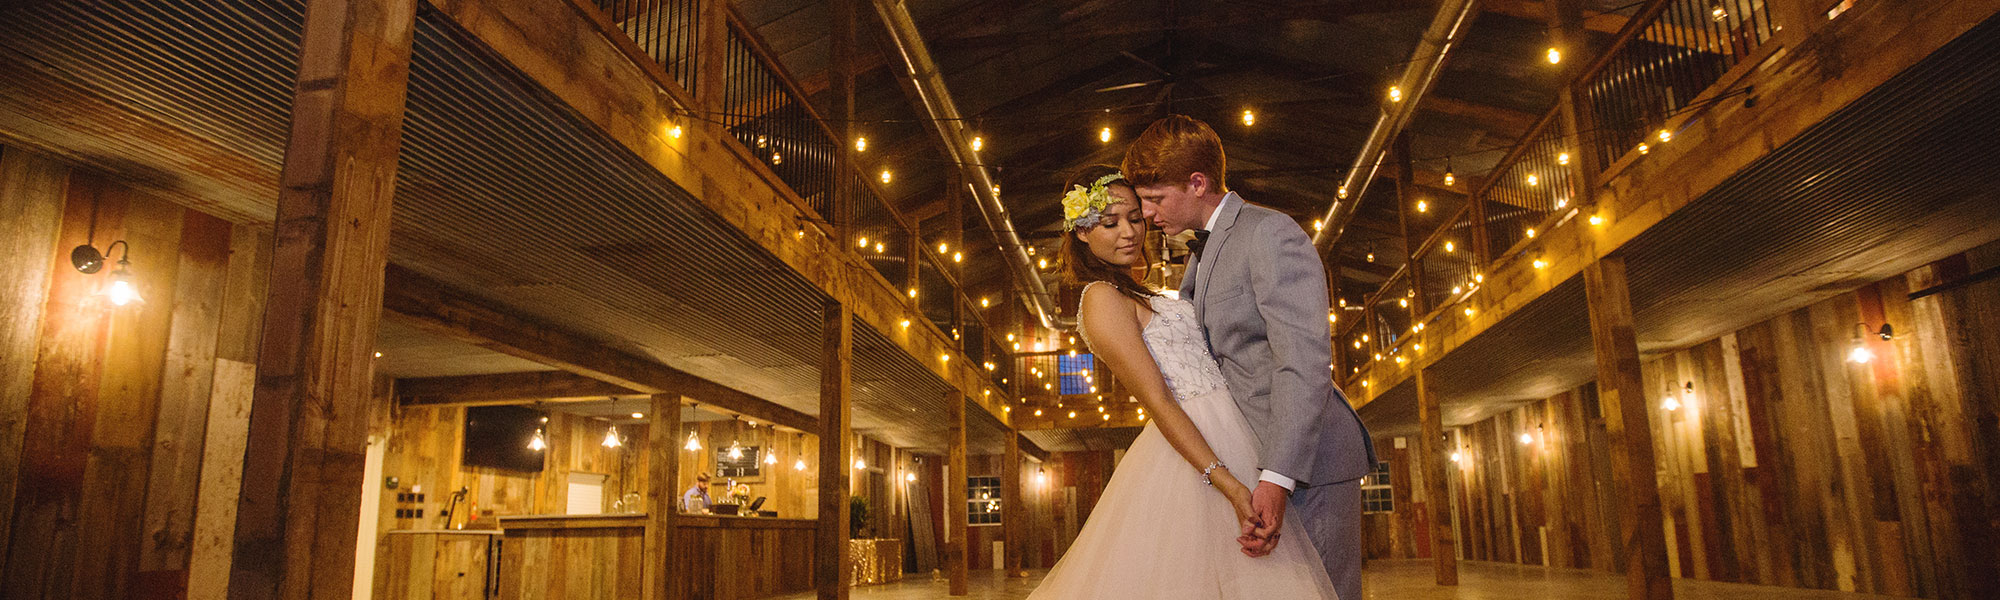 Inside wedding barn with reclaimed wood